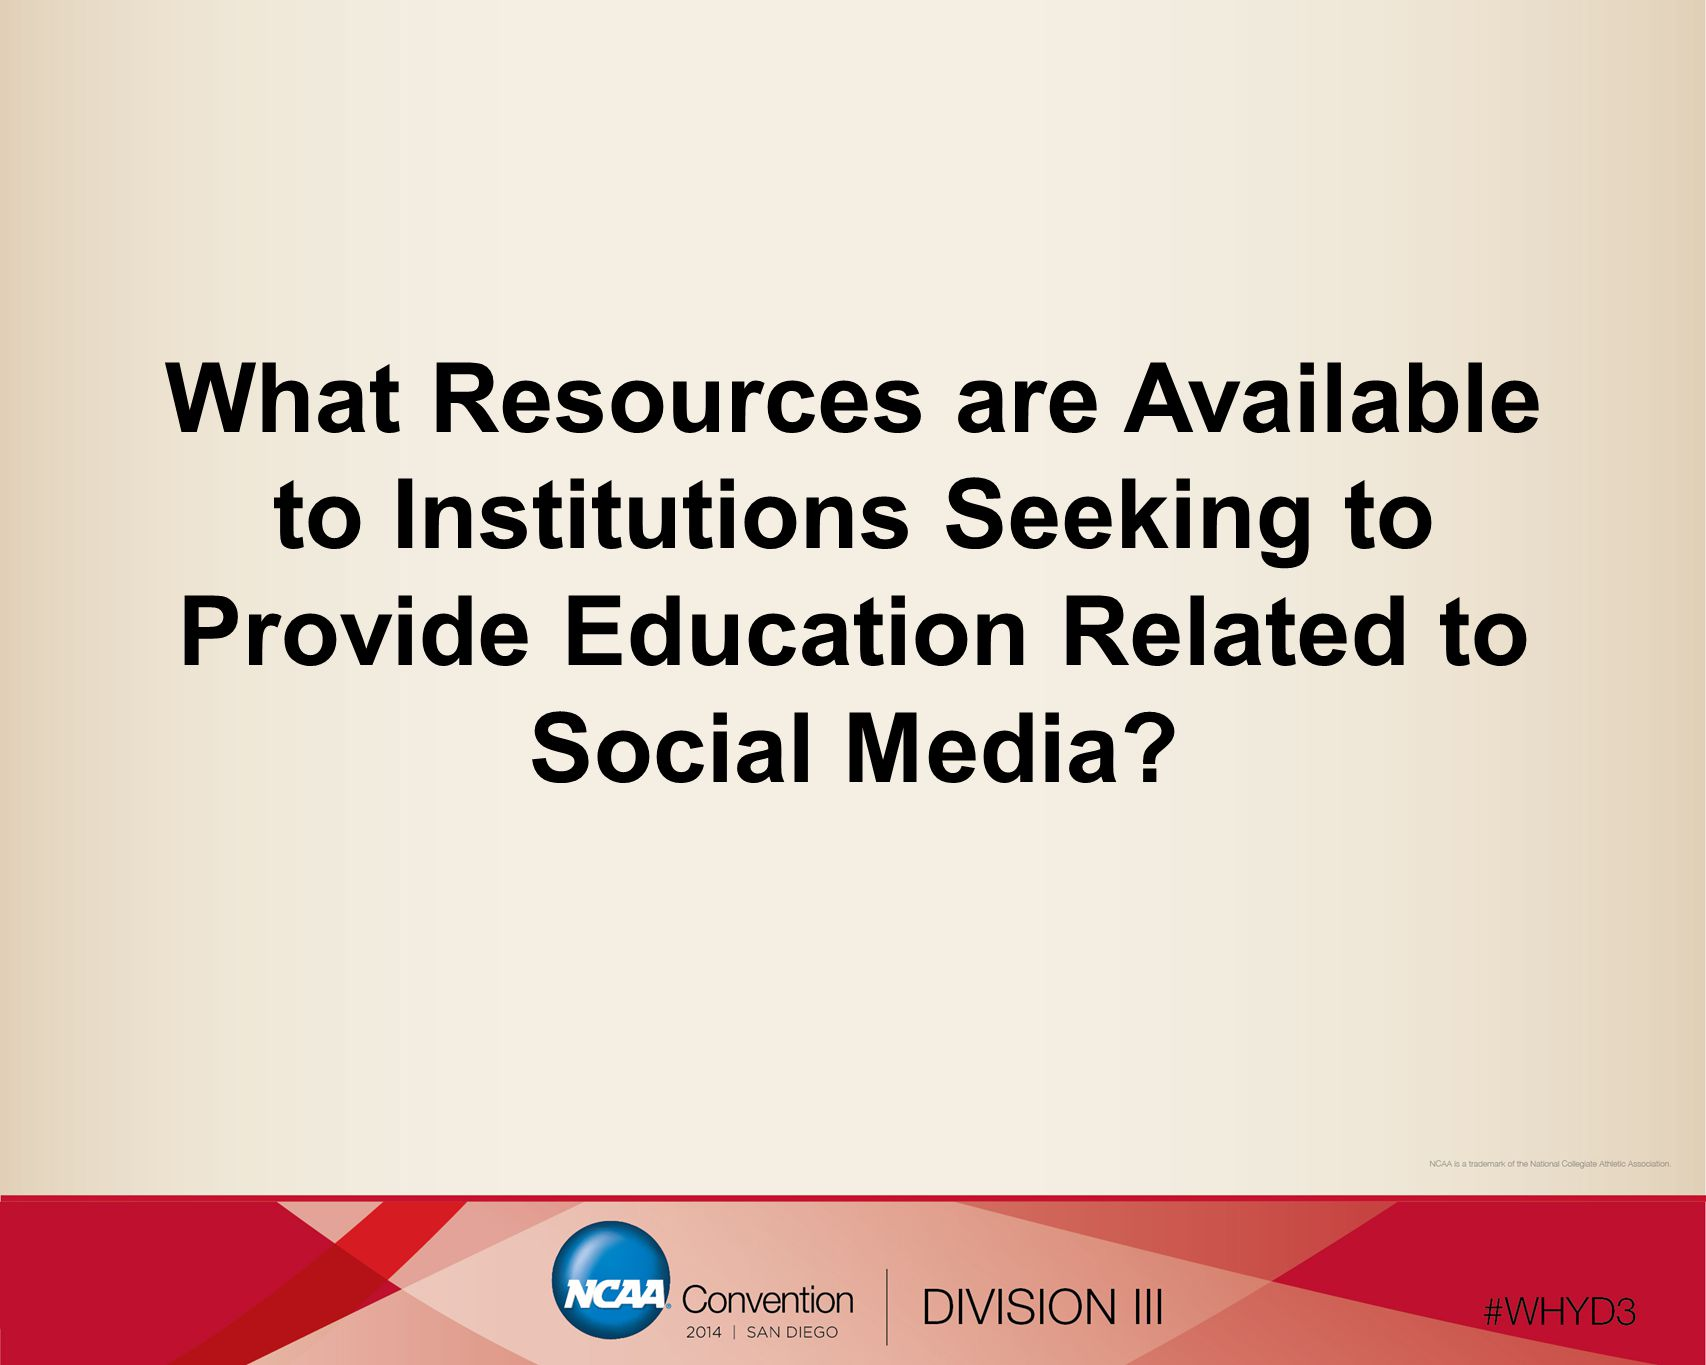 What Resources are Available to Institutions Seeking to Provide Education Related to Social Media?